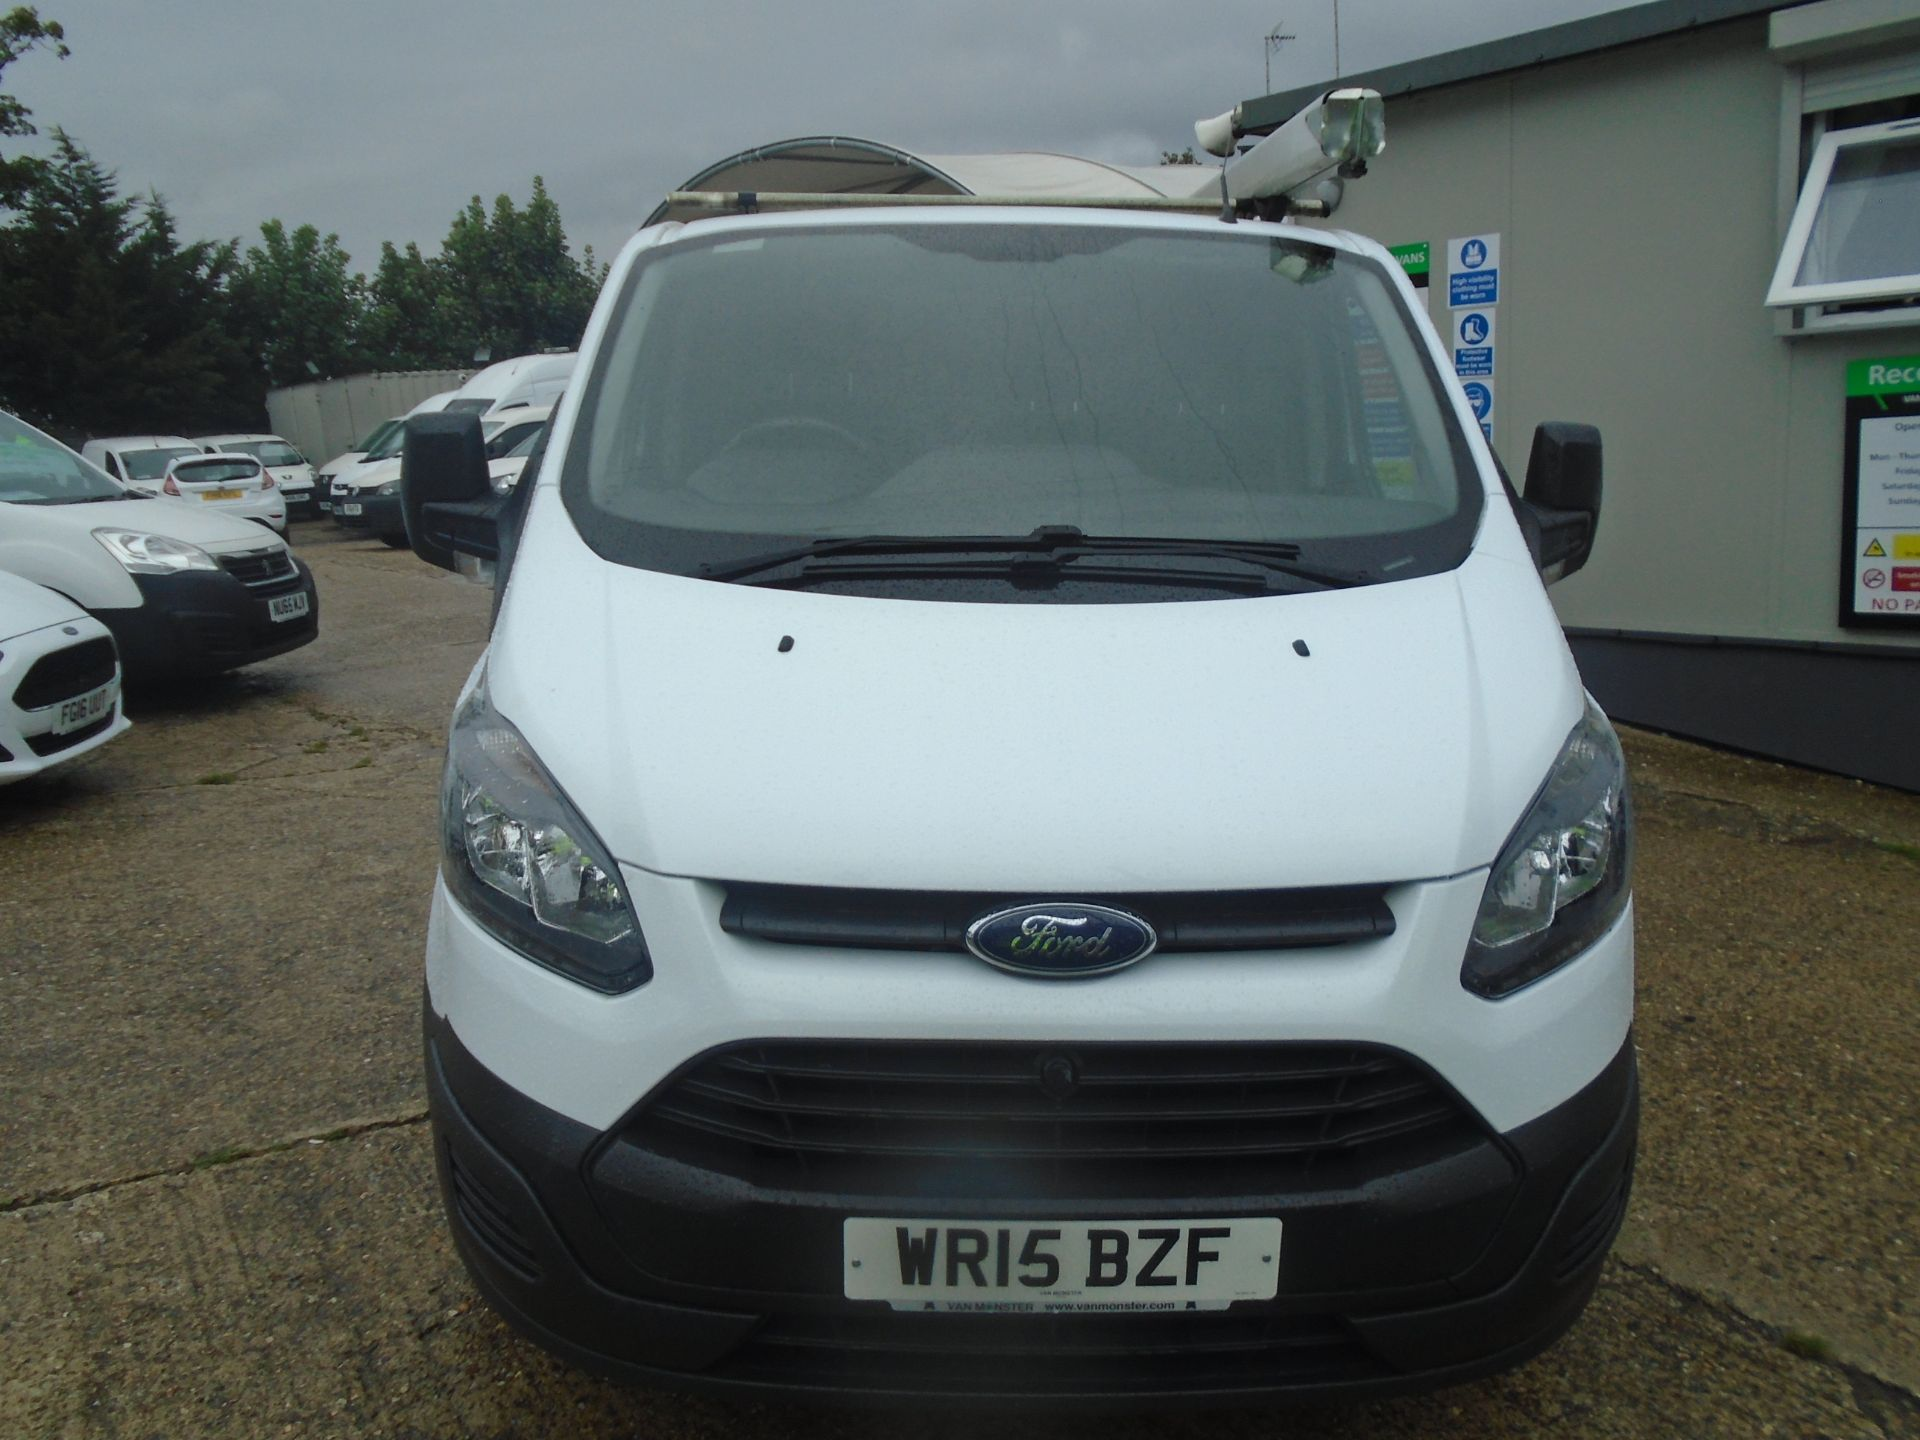 2015 Ford Transit Custom 2.2 Tdci 100Ps Low Roof Van (WR15BZF) Image 2